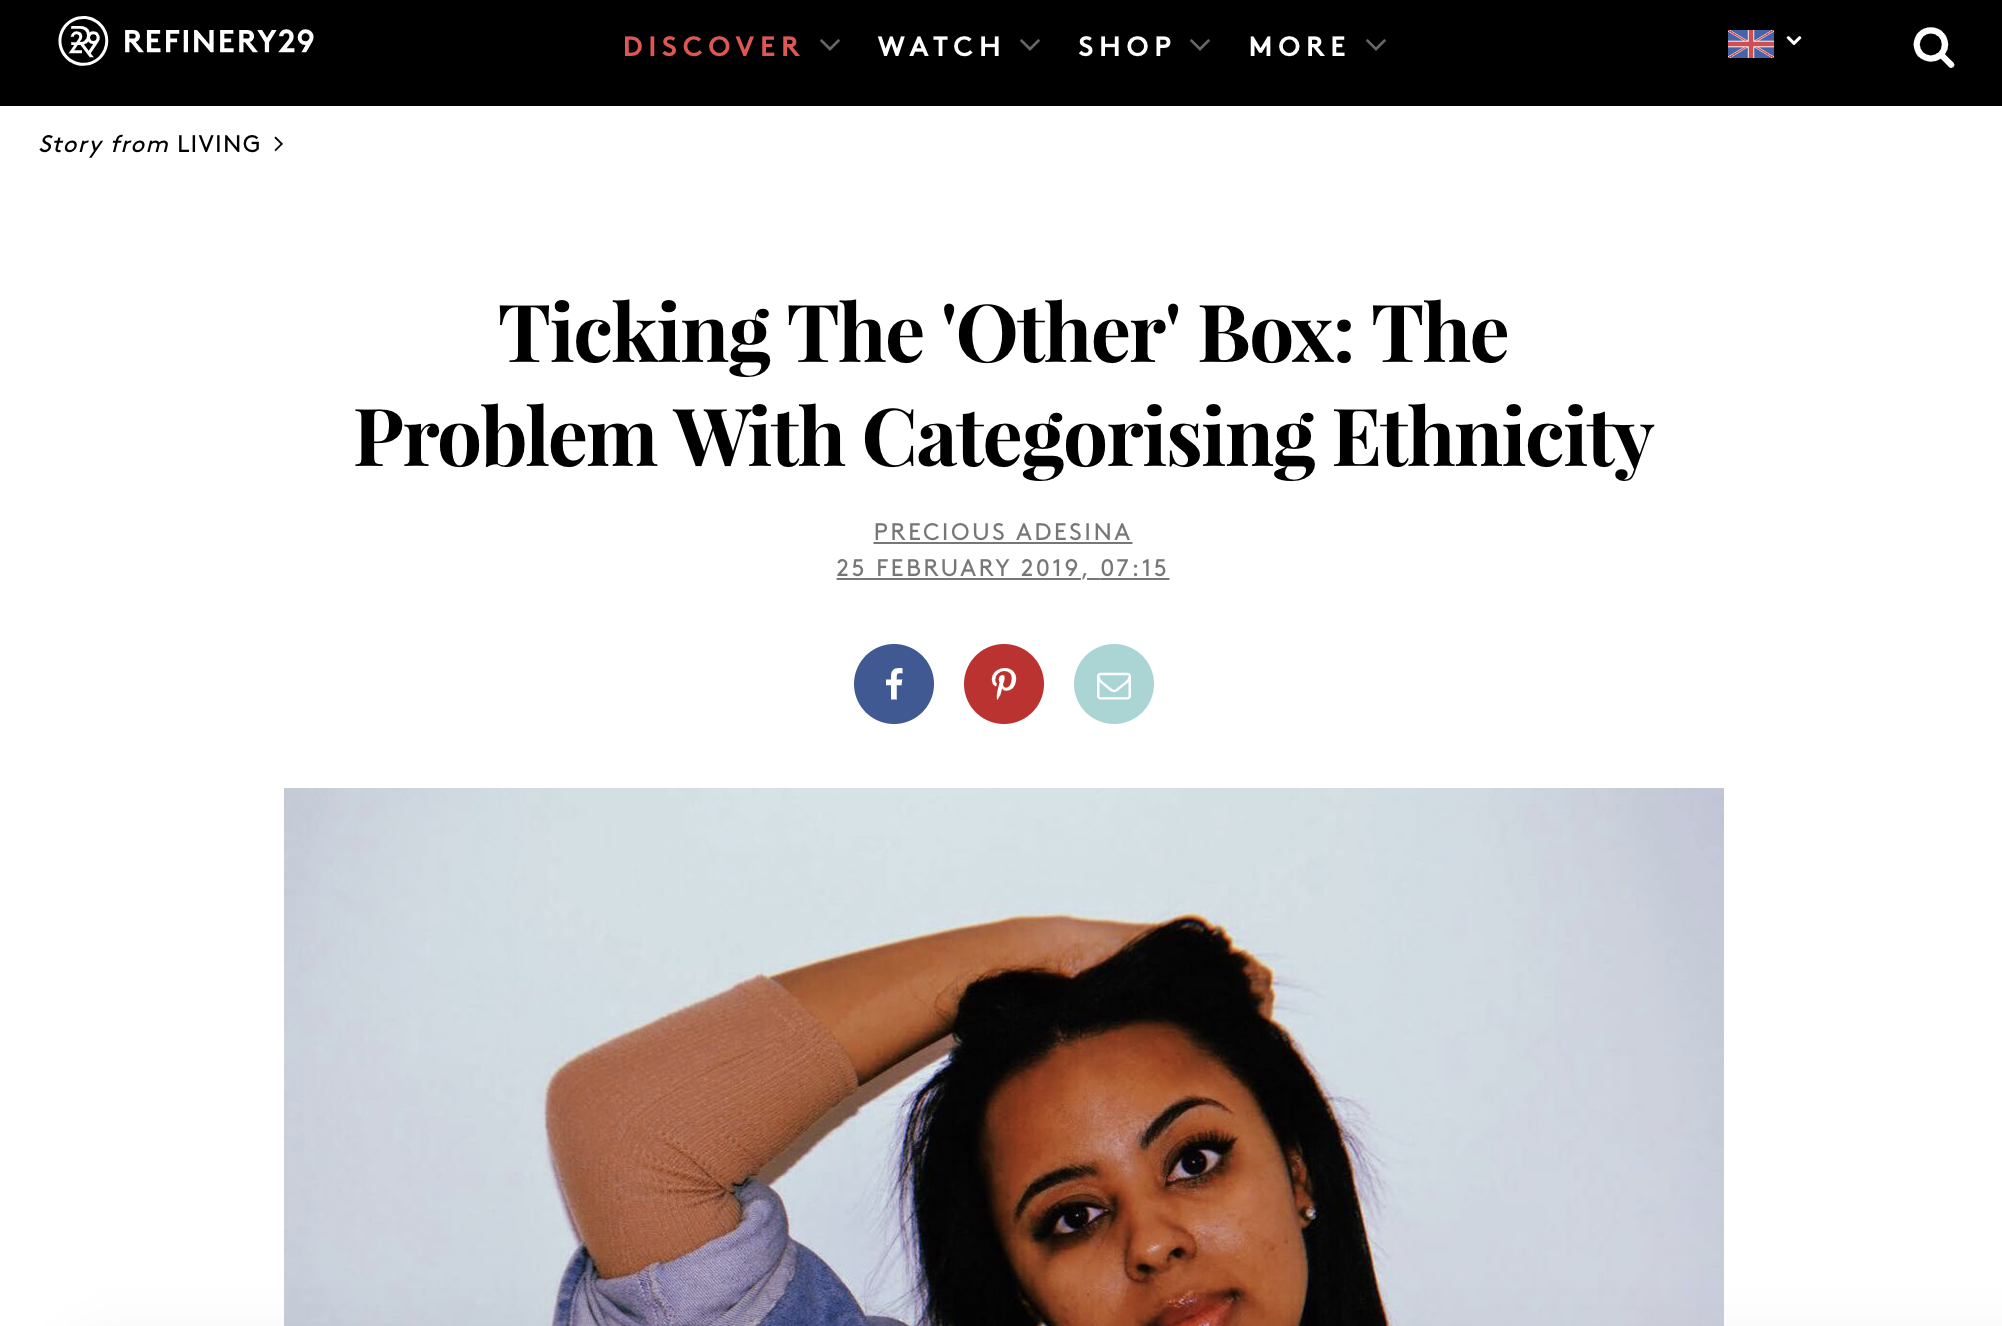 REFINERY 29  FEATURE  We recently spoke to Refinery 29 on ethnicity, identity, box-ticking and the origins of our name 'The Other Box'. You can read more  here .